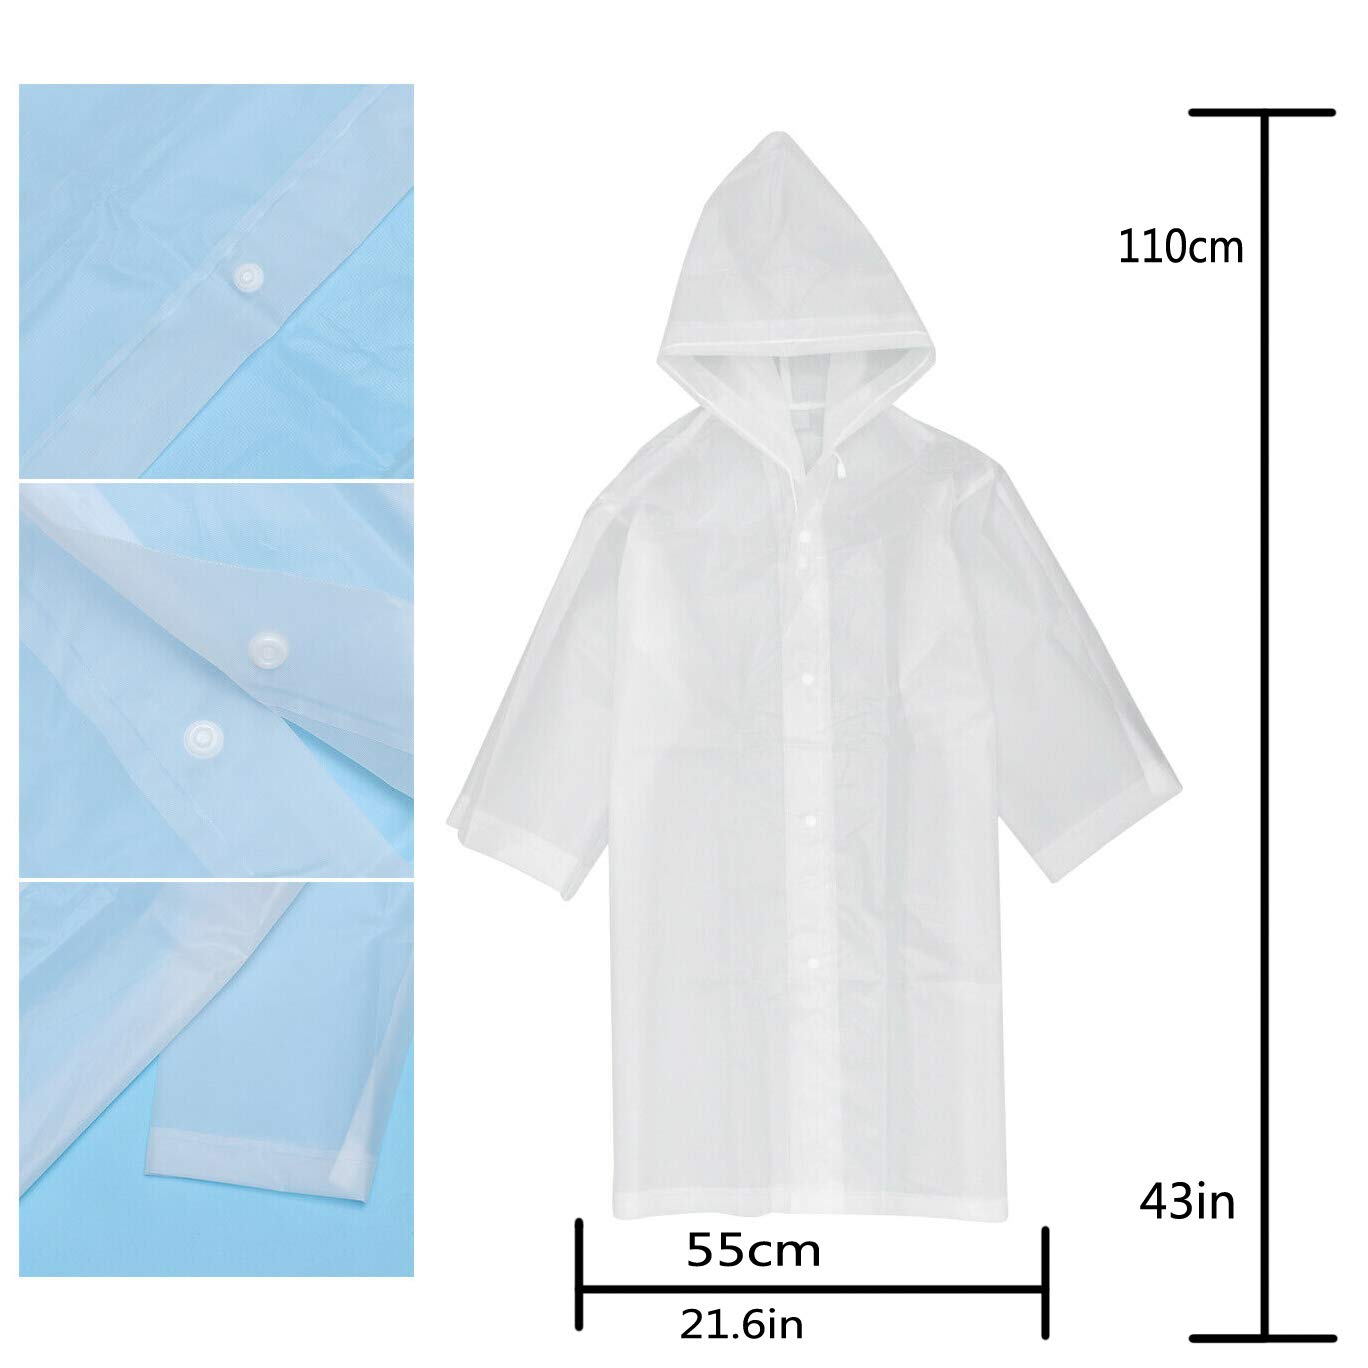 Poncho Suitable for 6-12 Years Old liwang Childrens Raincoat Waterproof Raincoat